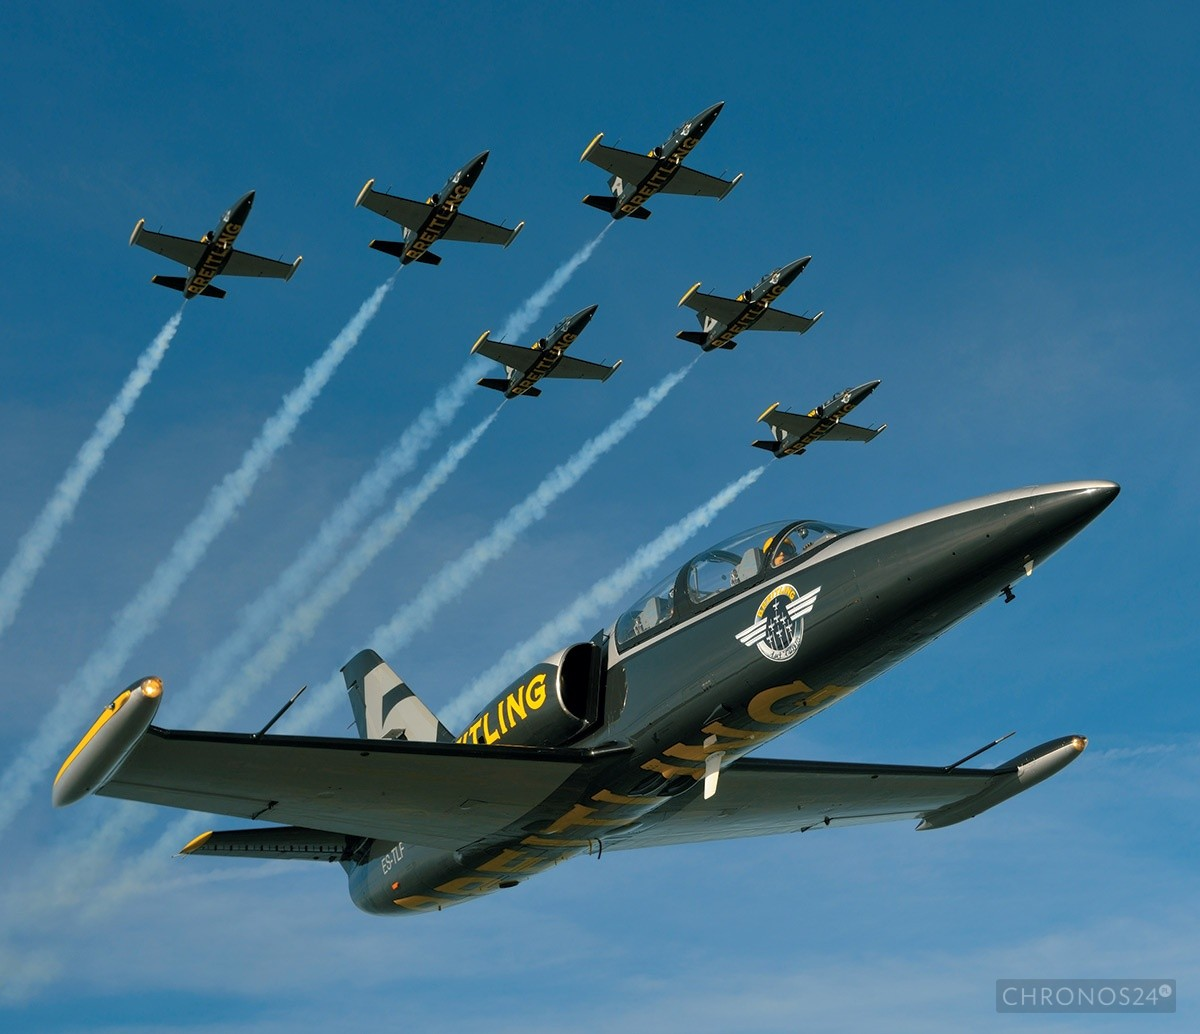 breitling jet team w polsce ch24 pl. Black Bedroom Furniture Sets. Home Design Ideas